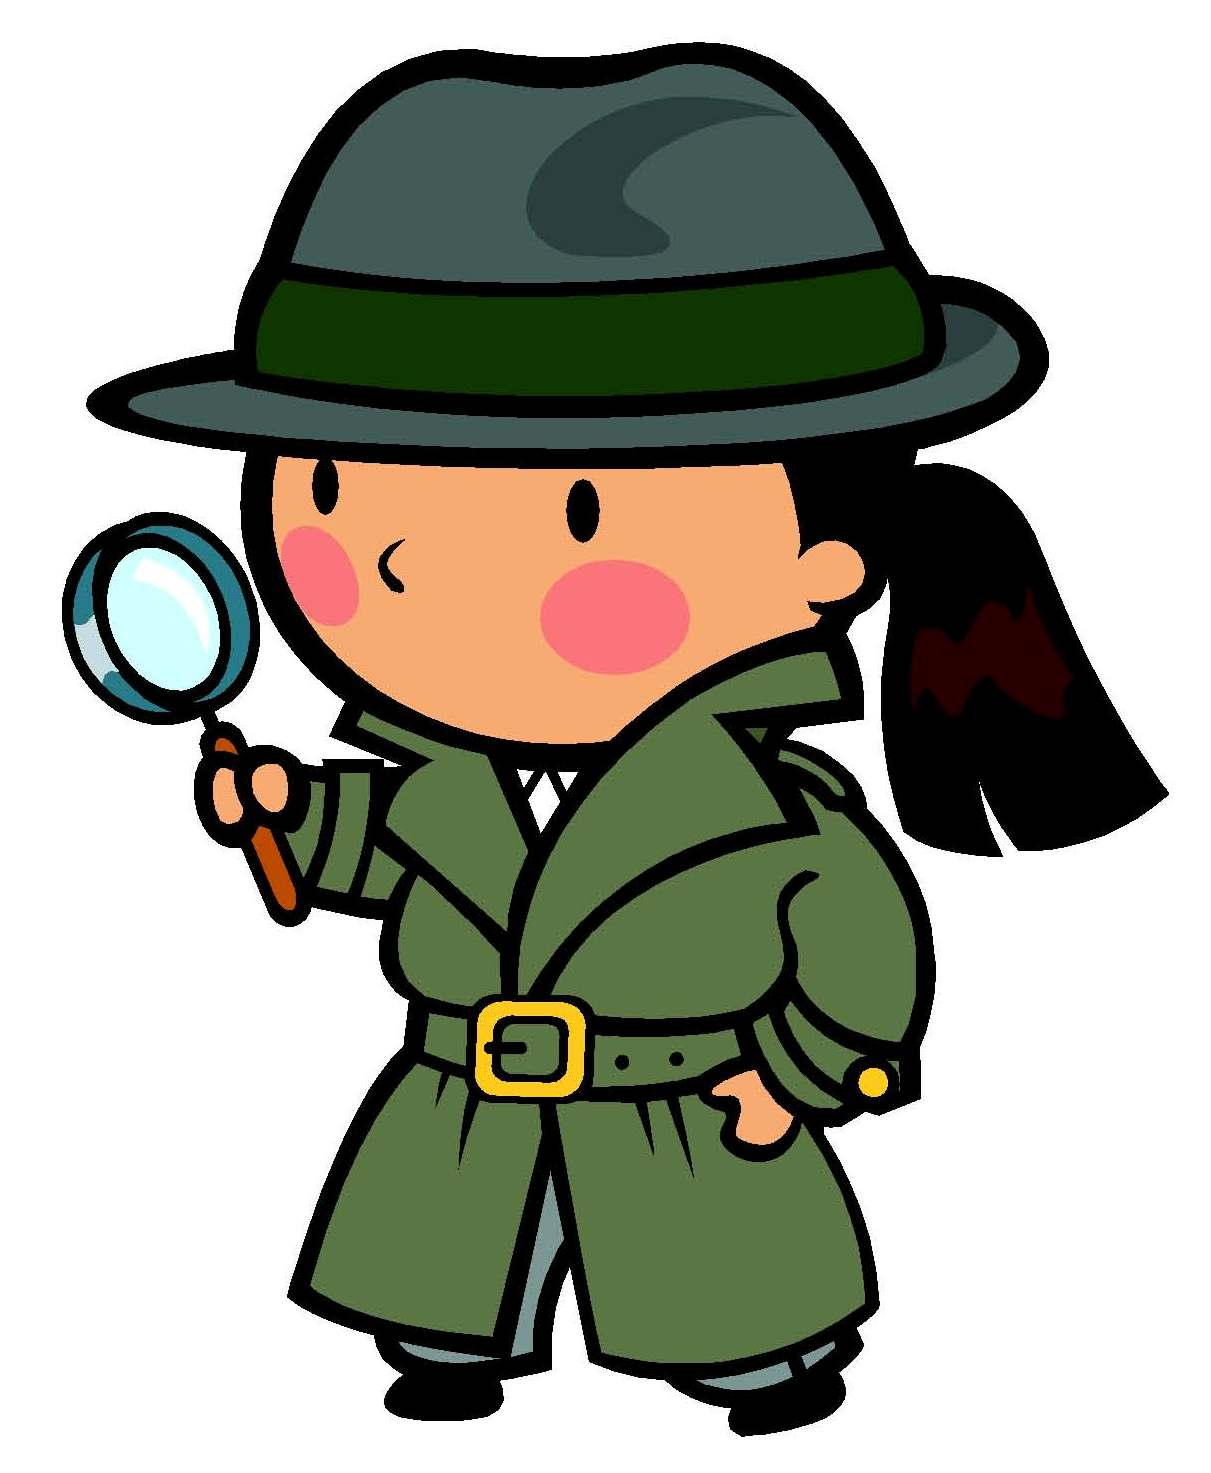 Opinions on detective